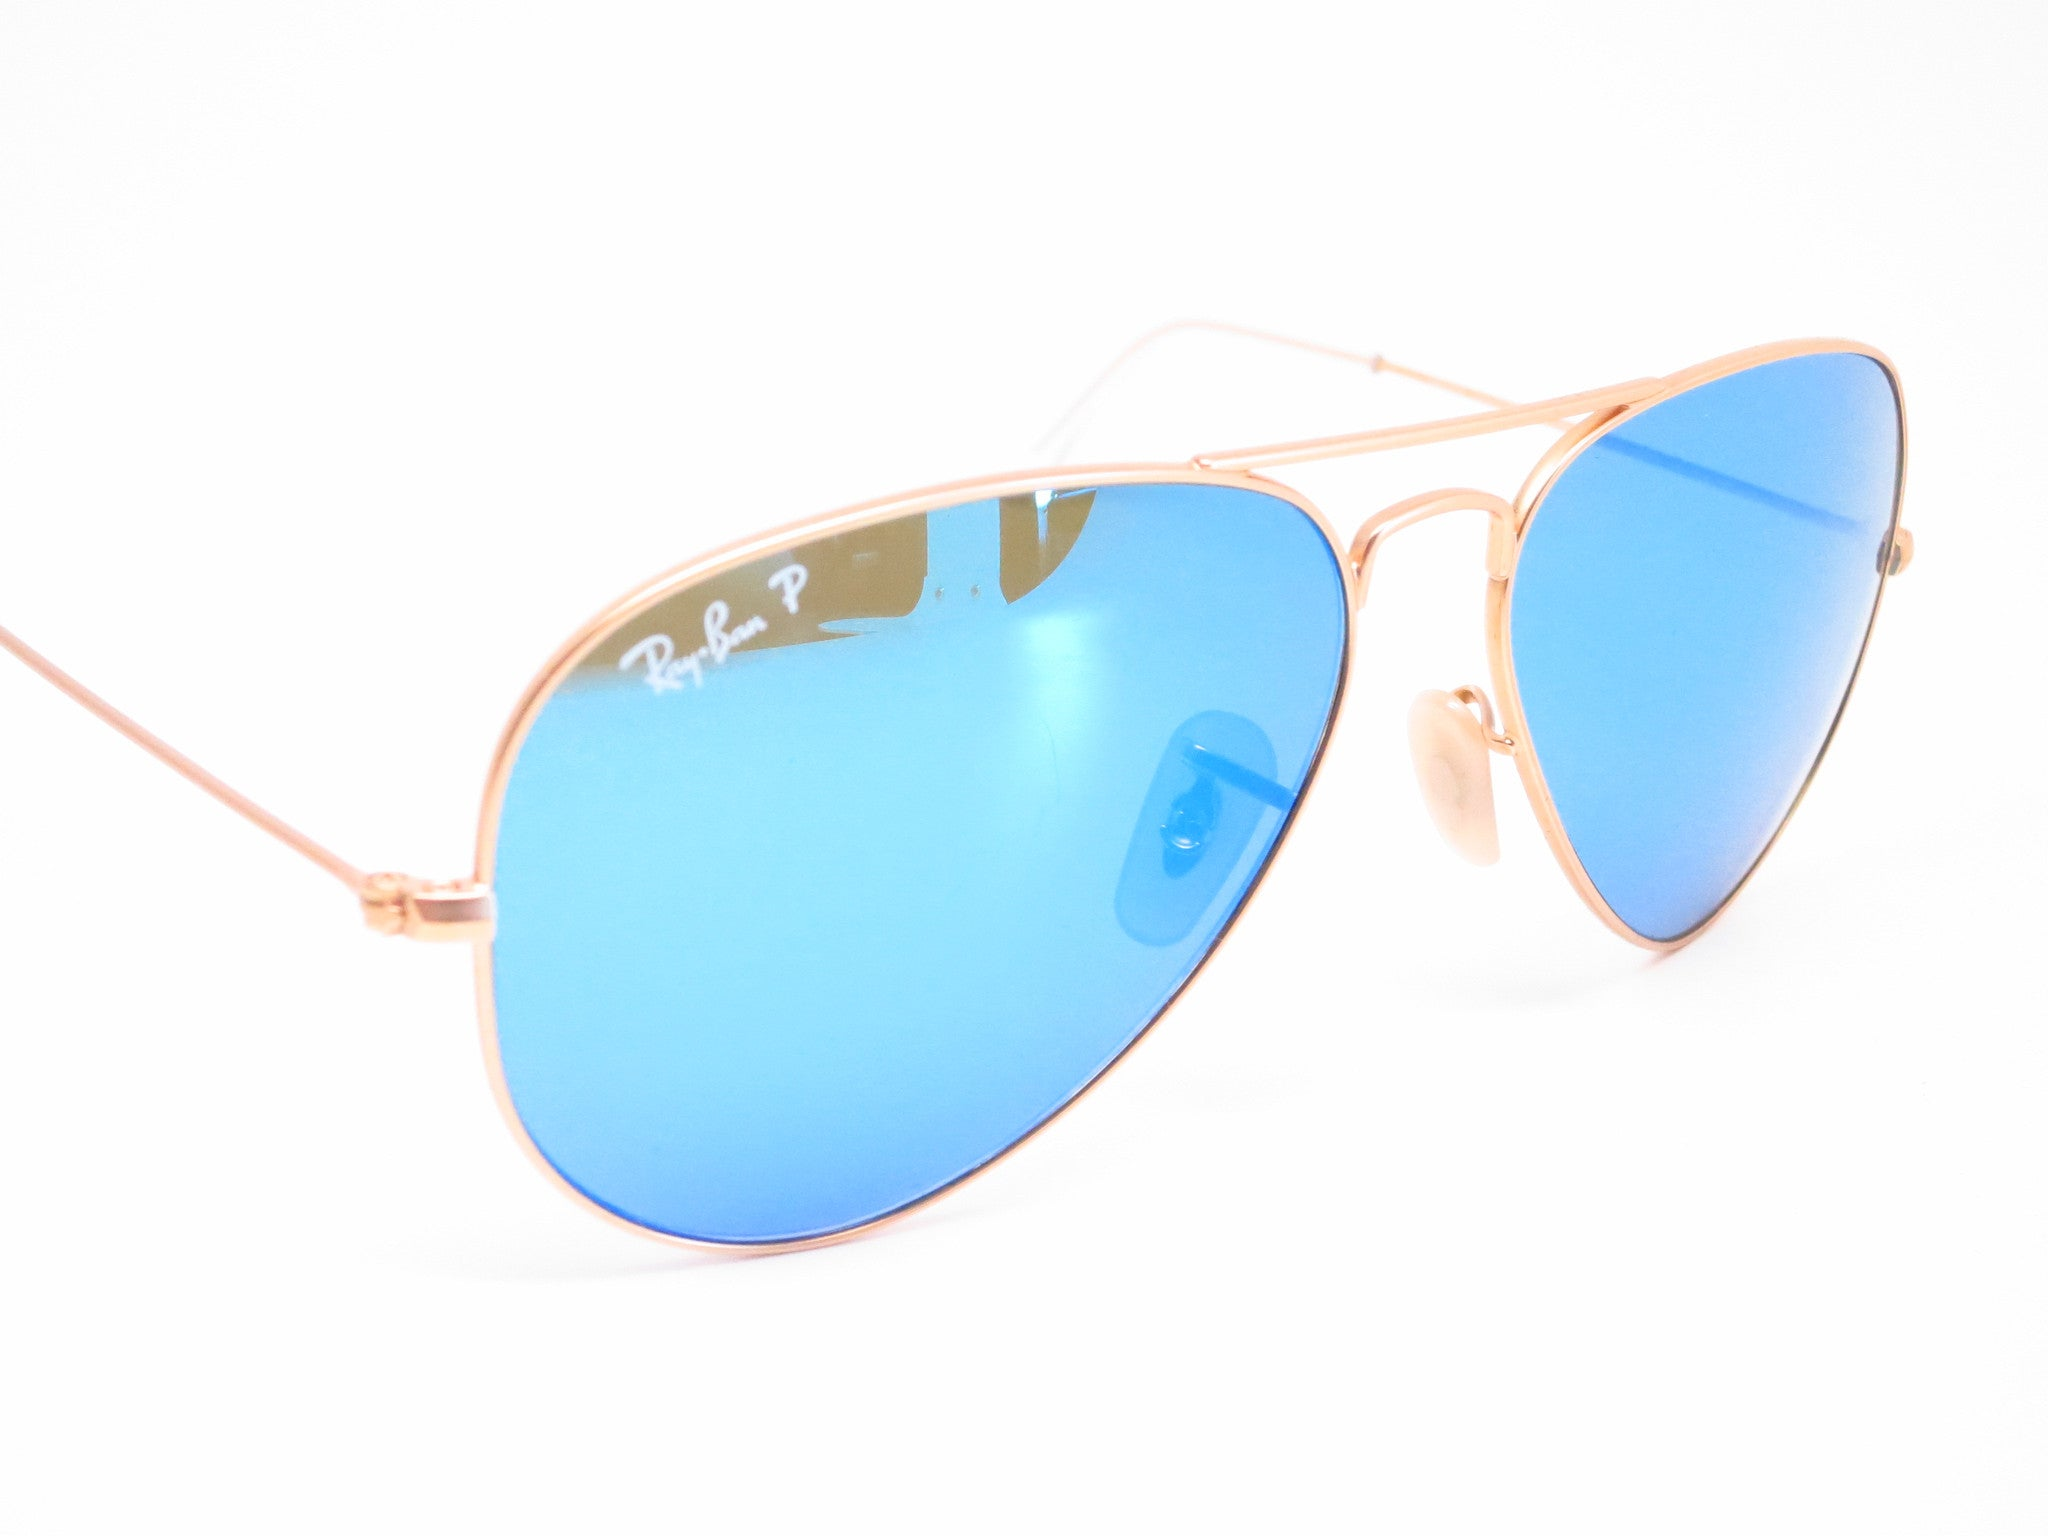 f3c63cf540 ... Ray-Ban RB 3025 Aviator 112 4L Matte Gold Polarized Sunglasses - Eye  Heart ...